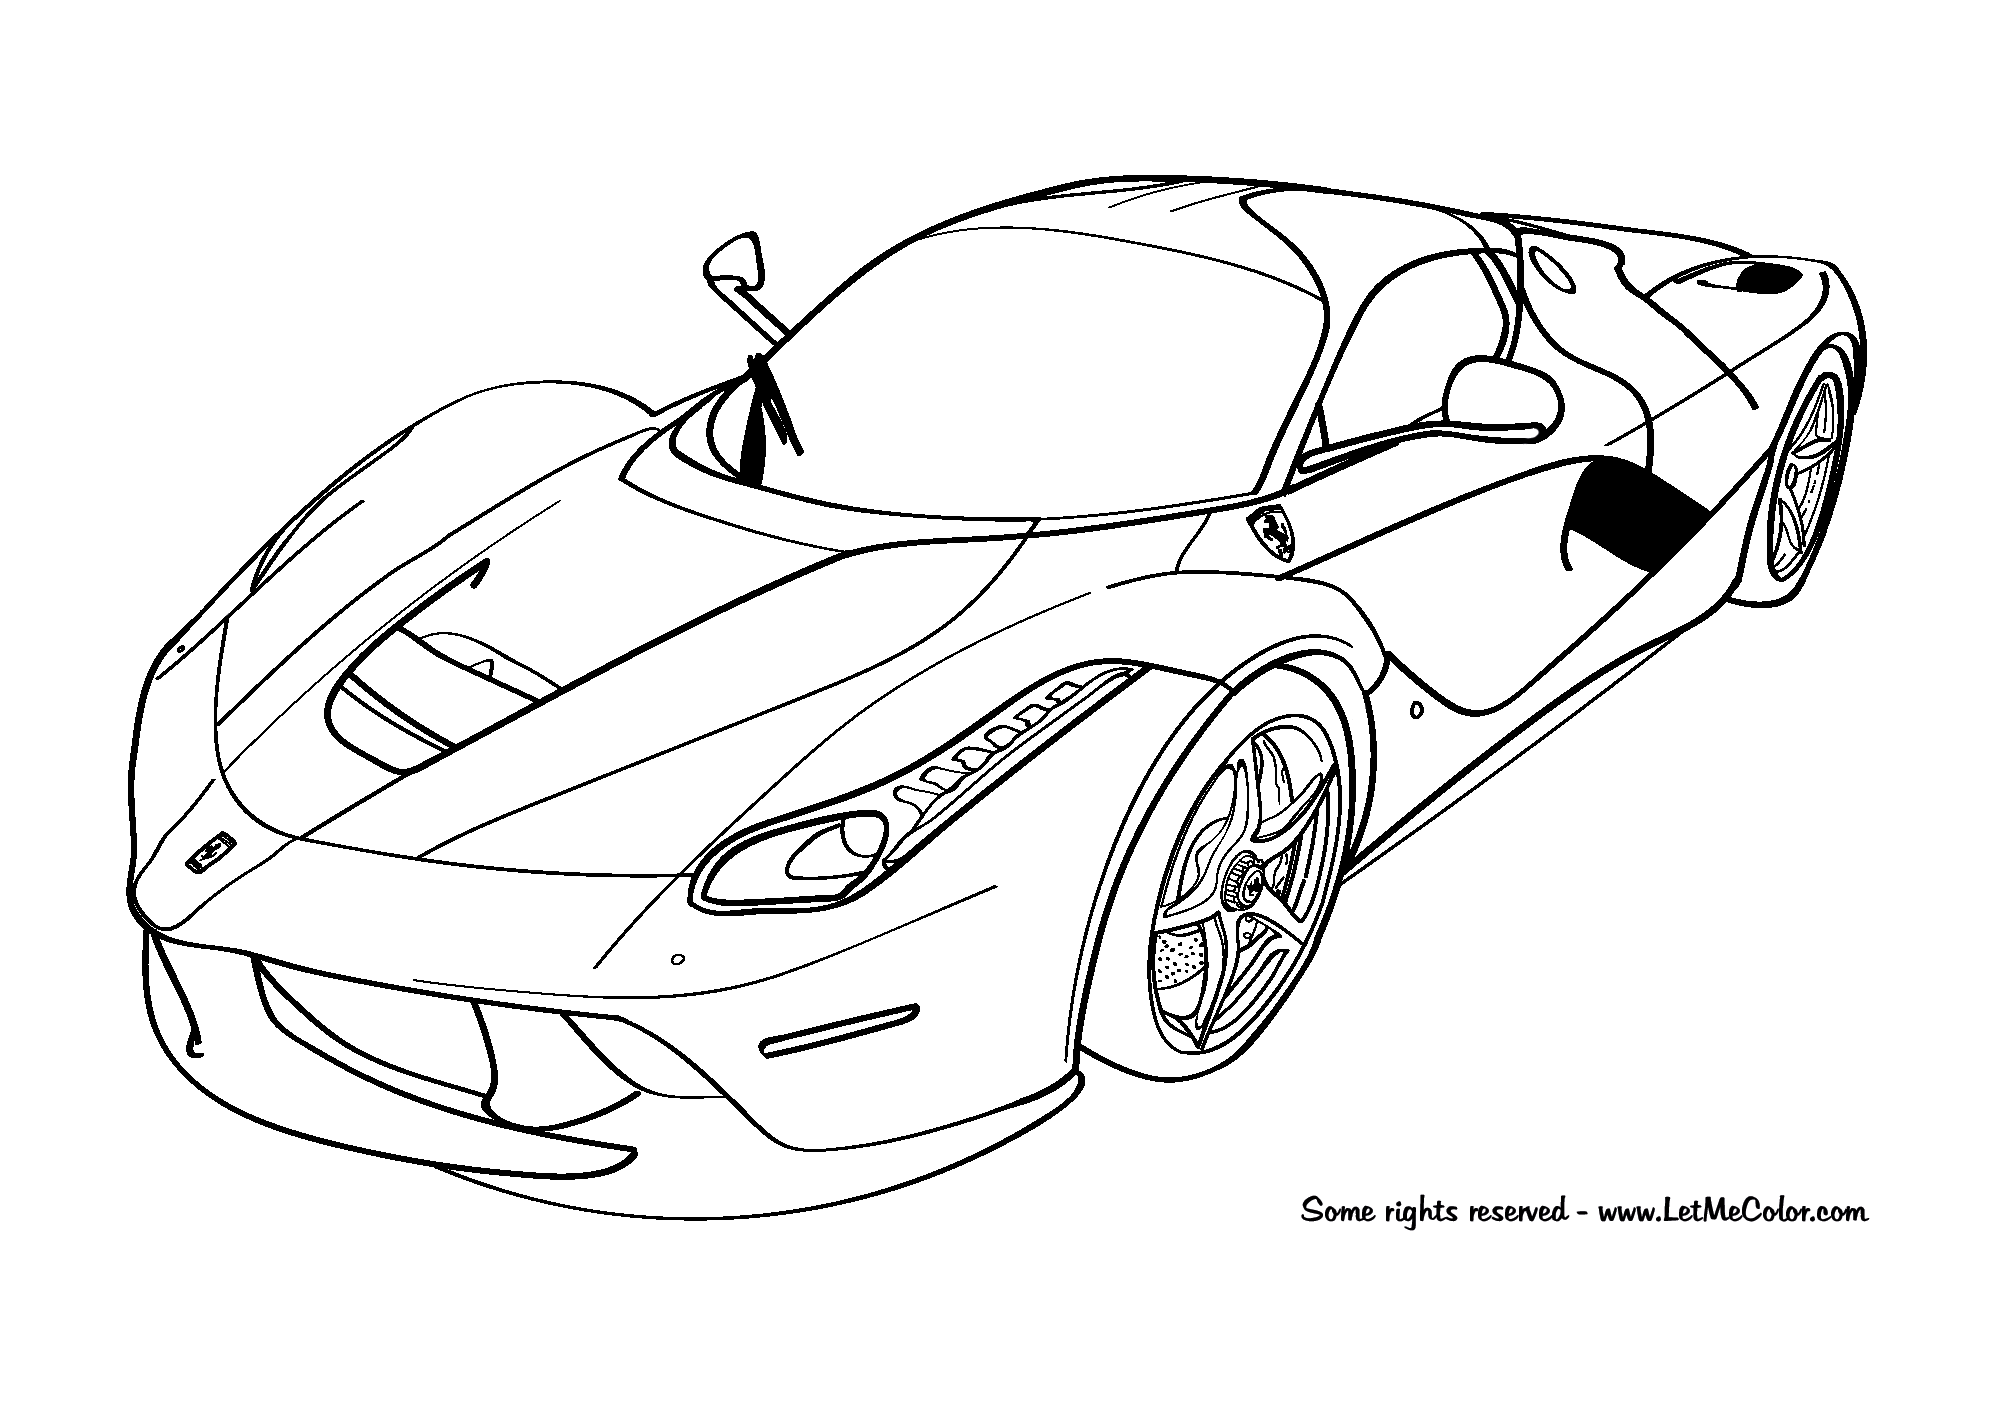 Auto Ausmalbilder : Coloring Cars Letmecolor Coloring_pages Pinterest